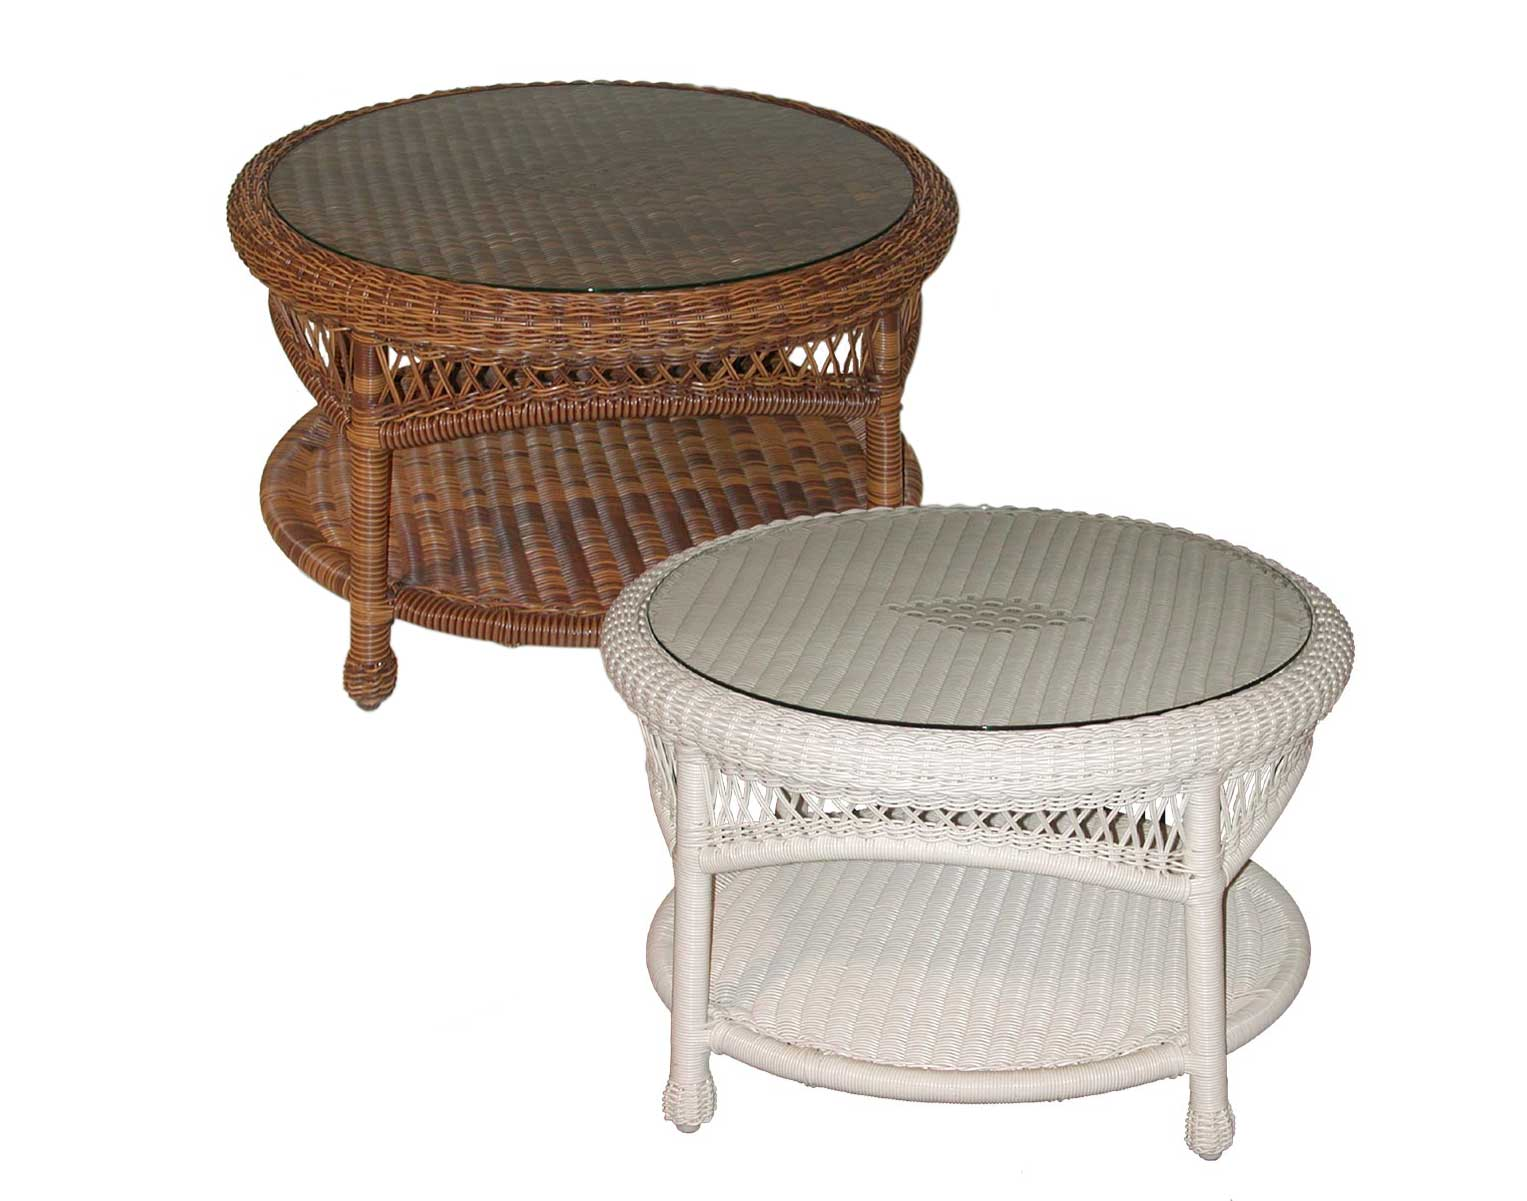 Wicker Sands Round Coffee Table